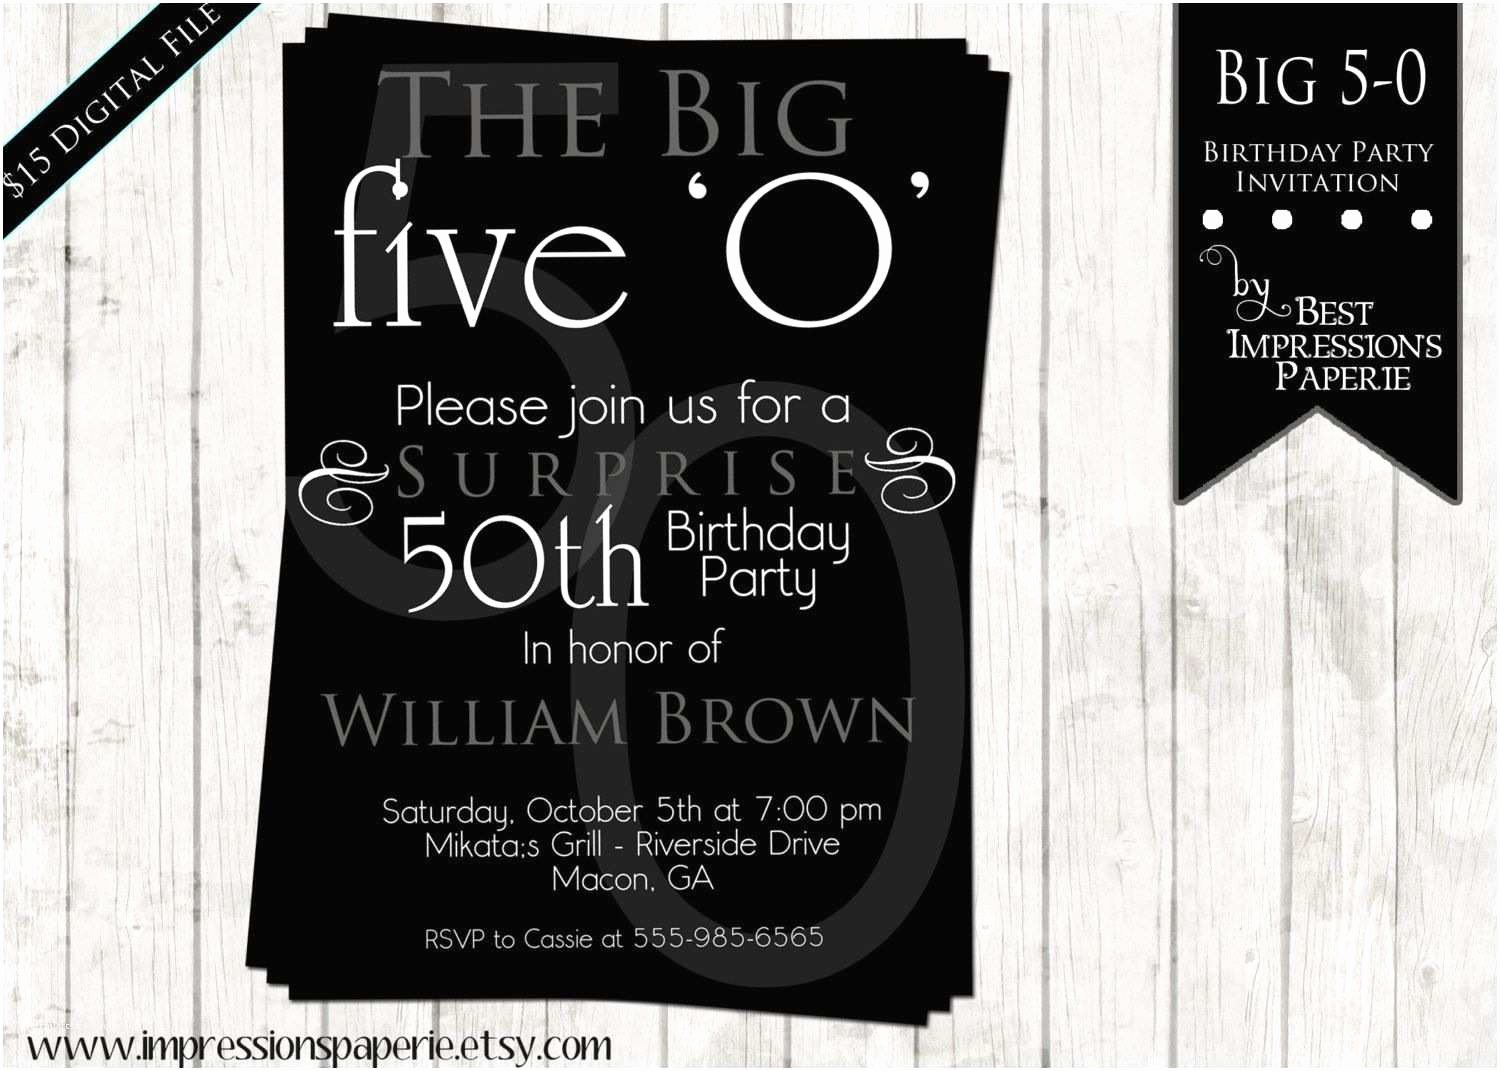 50th Birthday Invitation Wording Samples Fresh 50th Birthday Party Invitations for Her 50th Birthday